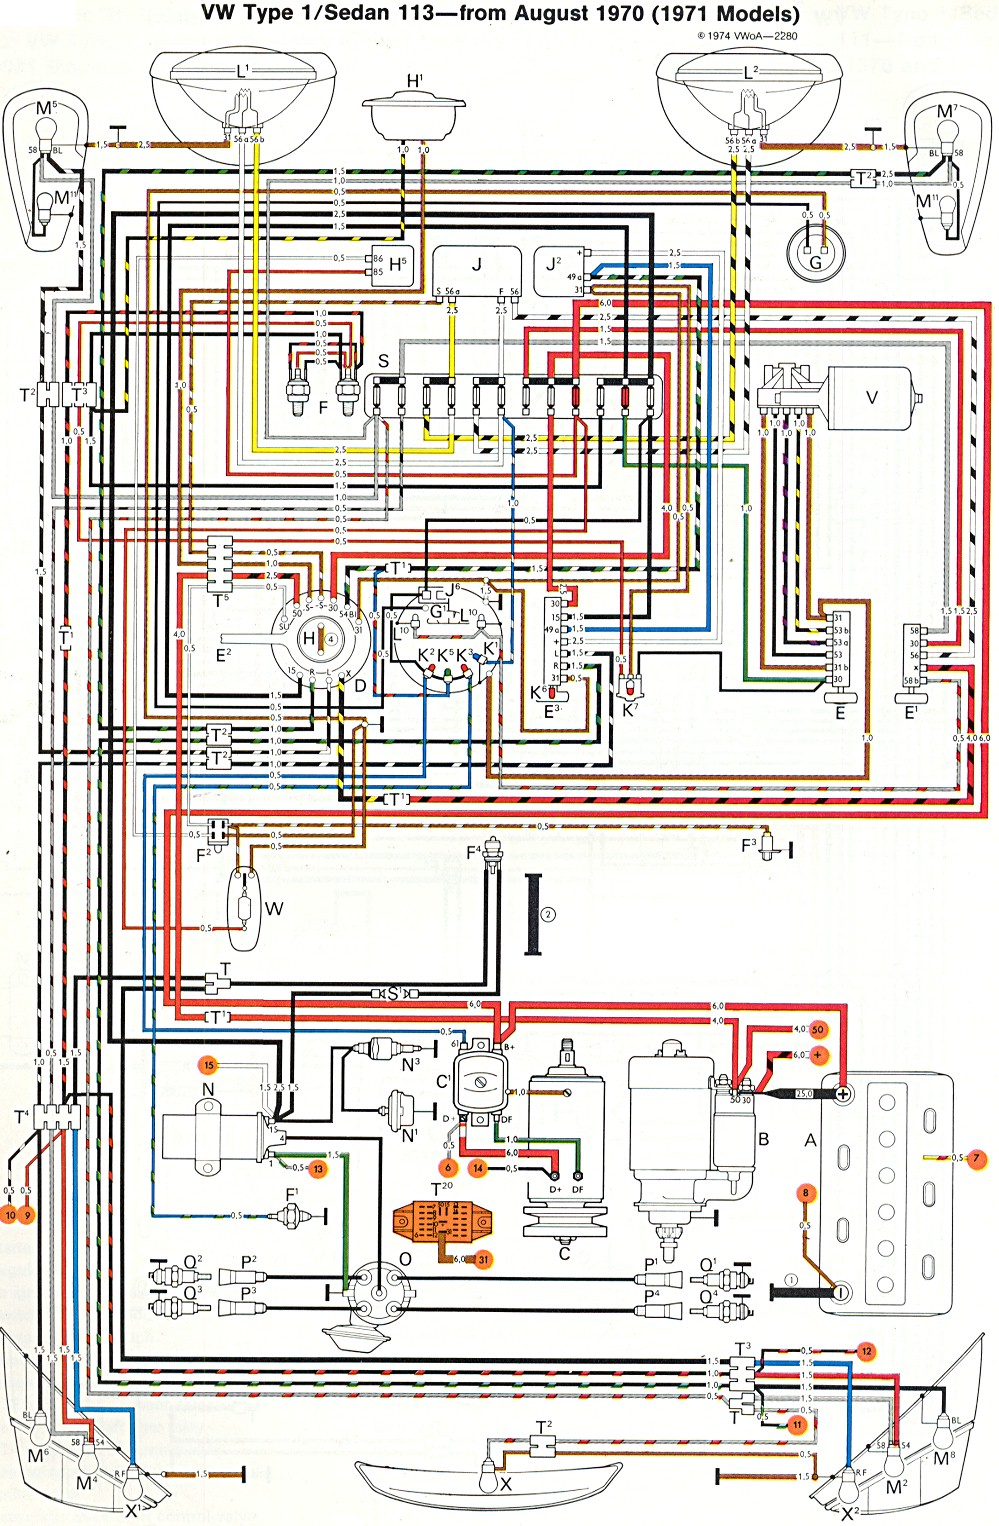 bug_super_71 vw beetle wiring diagram 1974 1973 vw beetle wiring diagram vw ignition wiring diagram at n-0.co